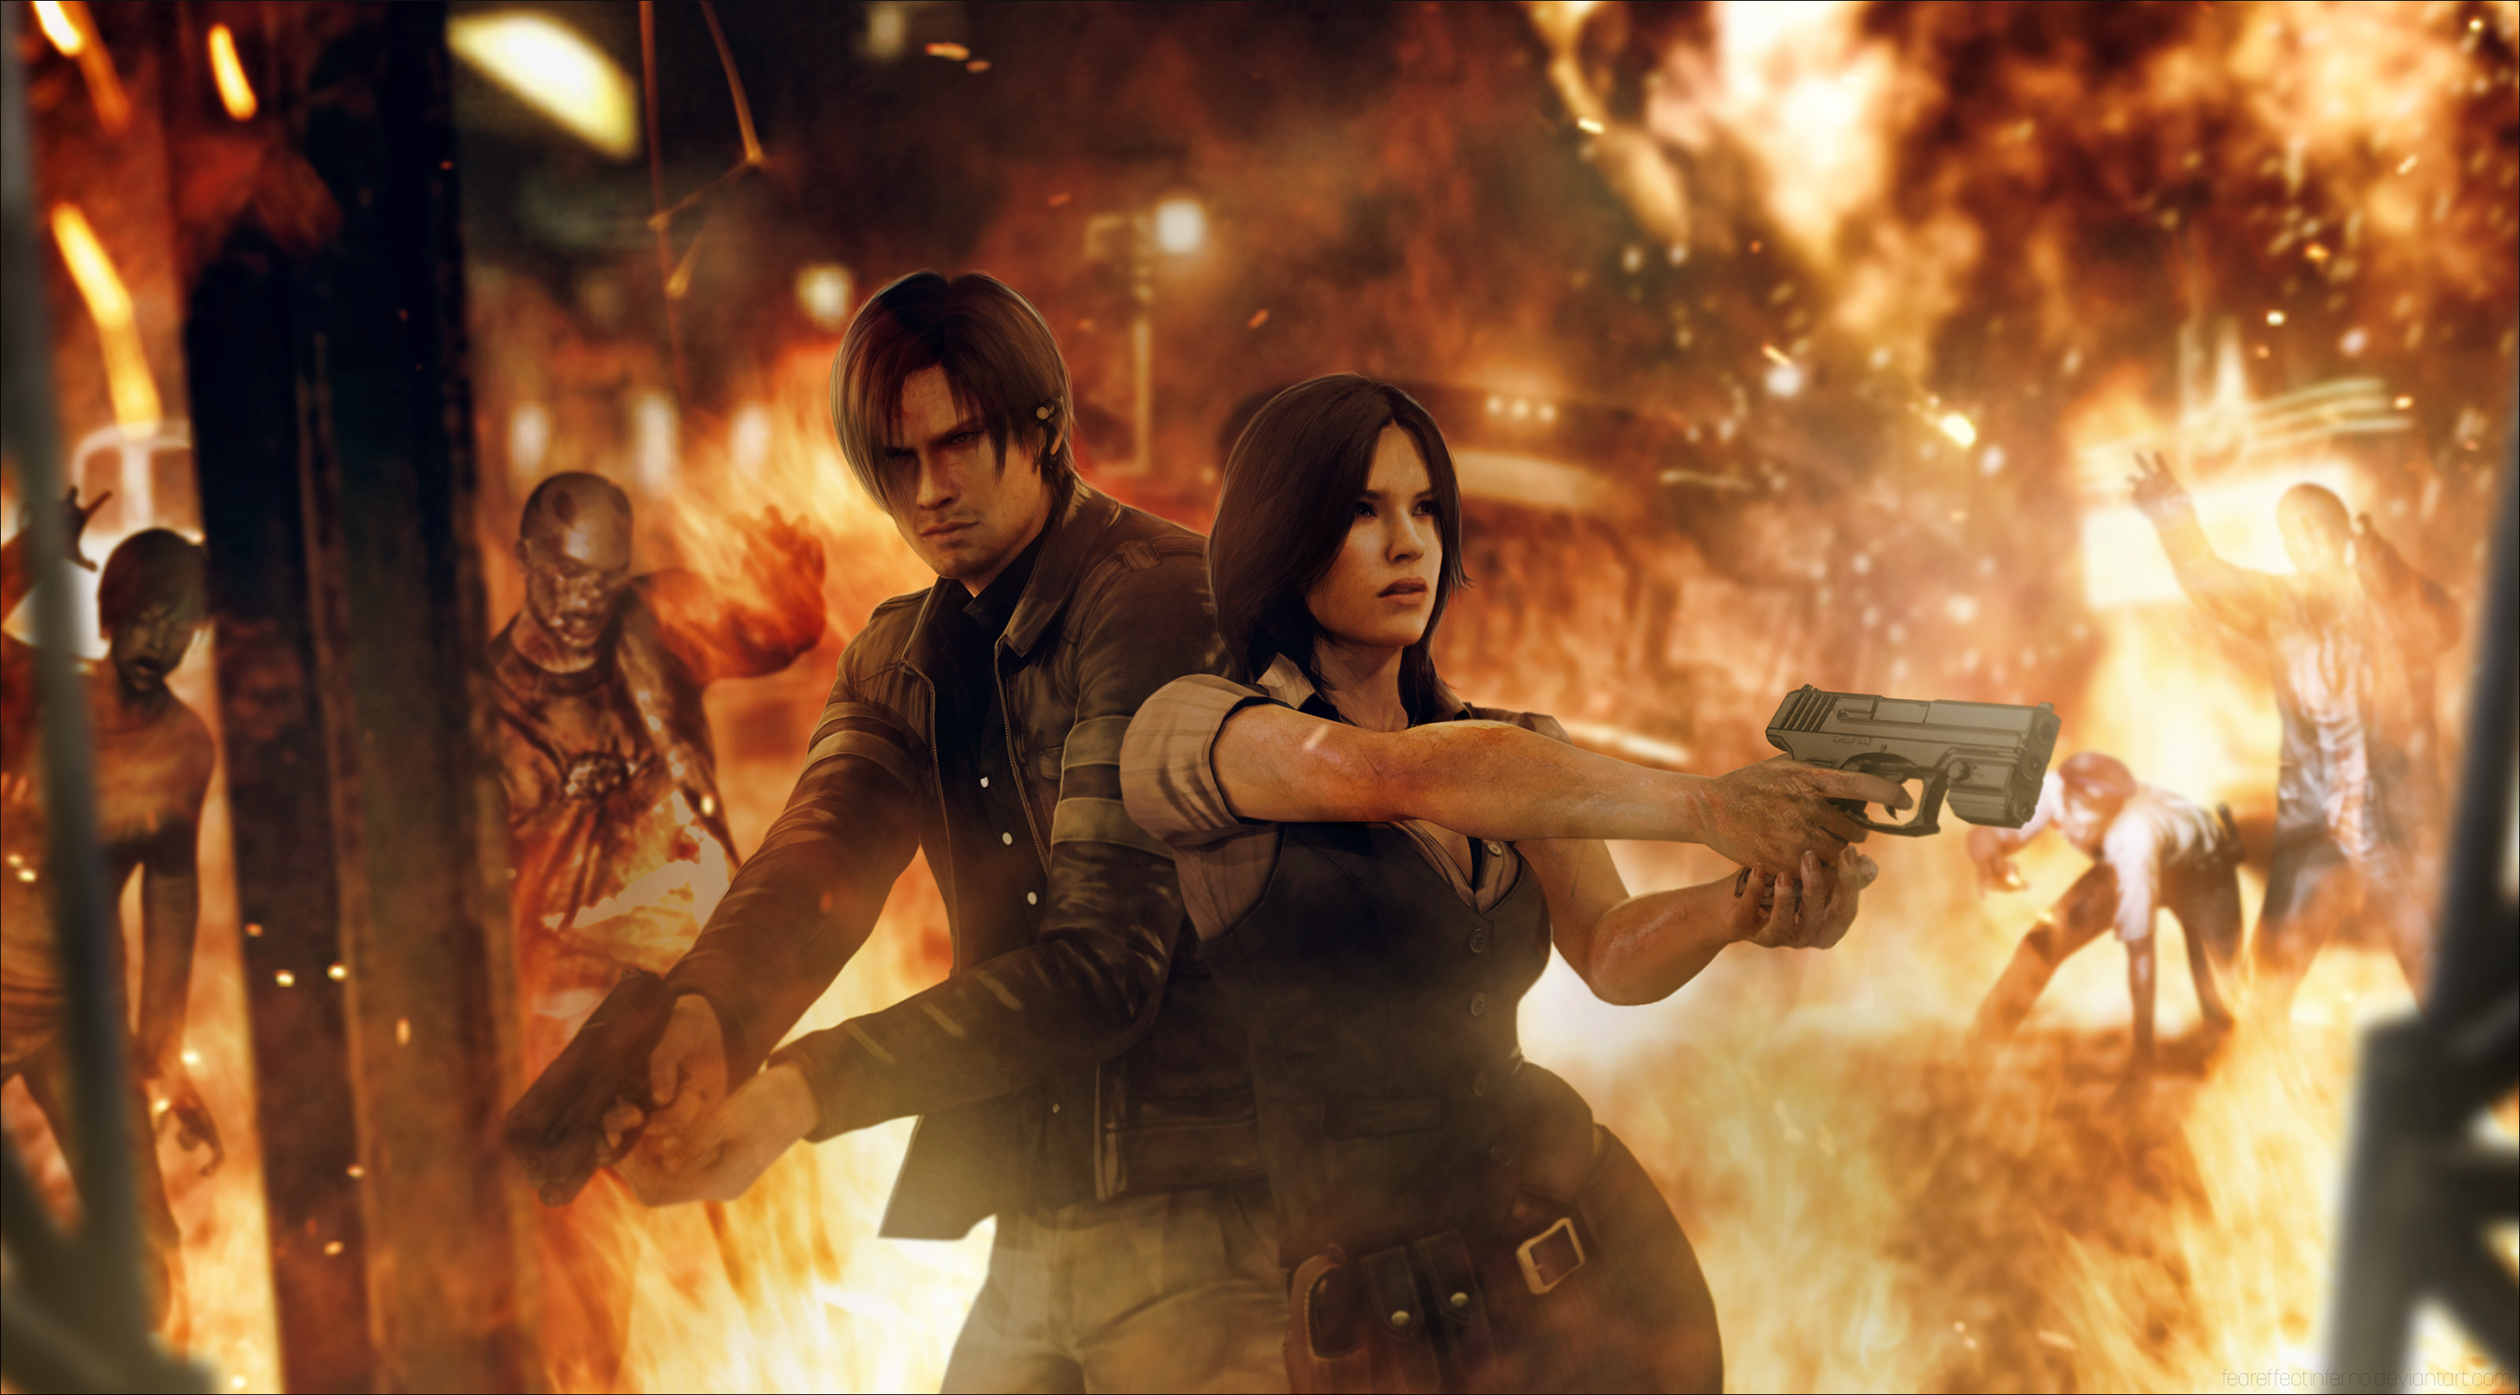 resident evil 6 full hd papel de parede and background